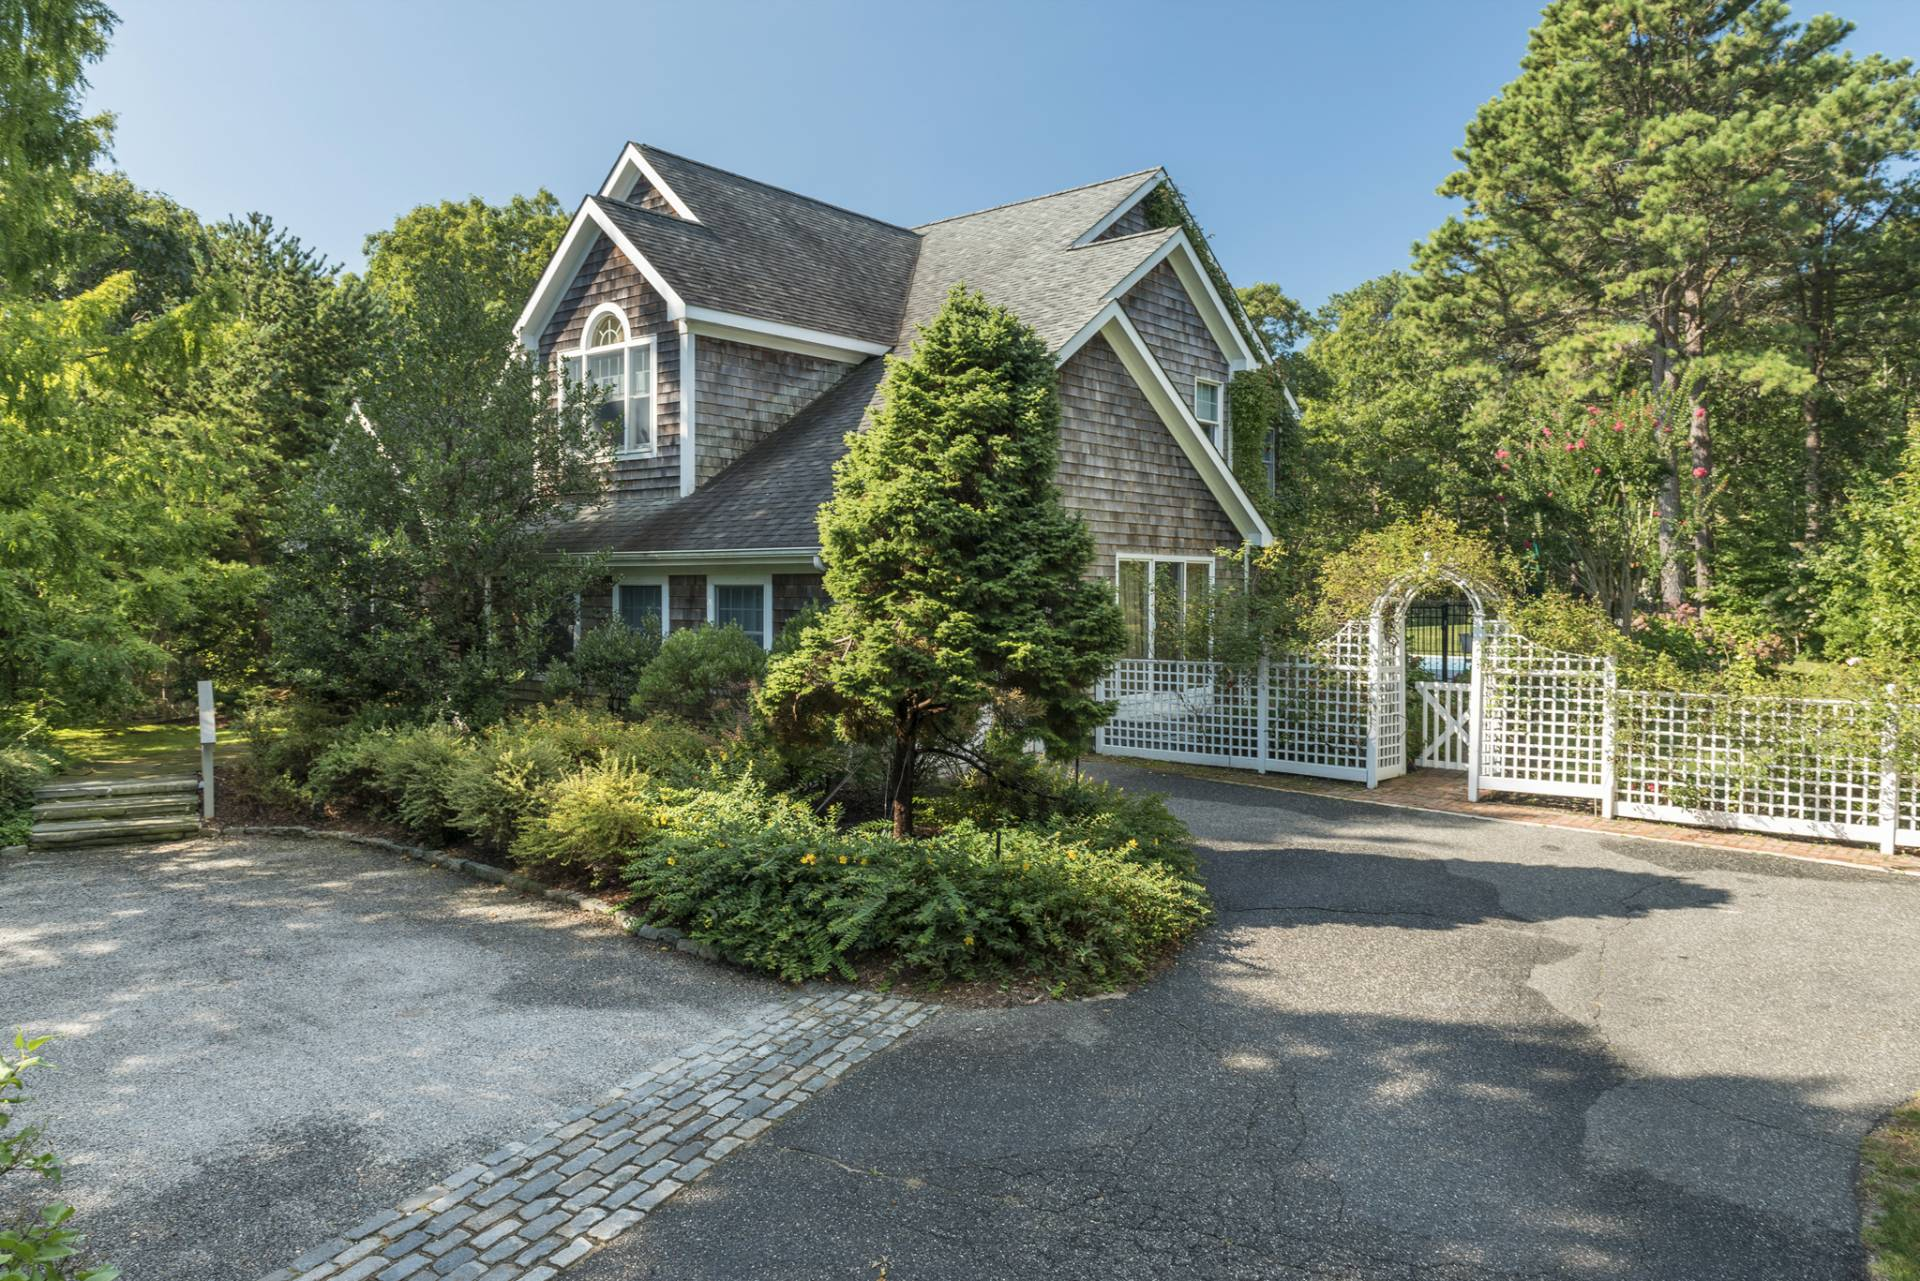 Single Family Home for Sale at Exquisite Parklike Property With Room For Tennis 615 Seven Ponds Towd Road, Bridgehampton, New York